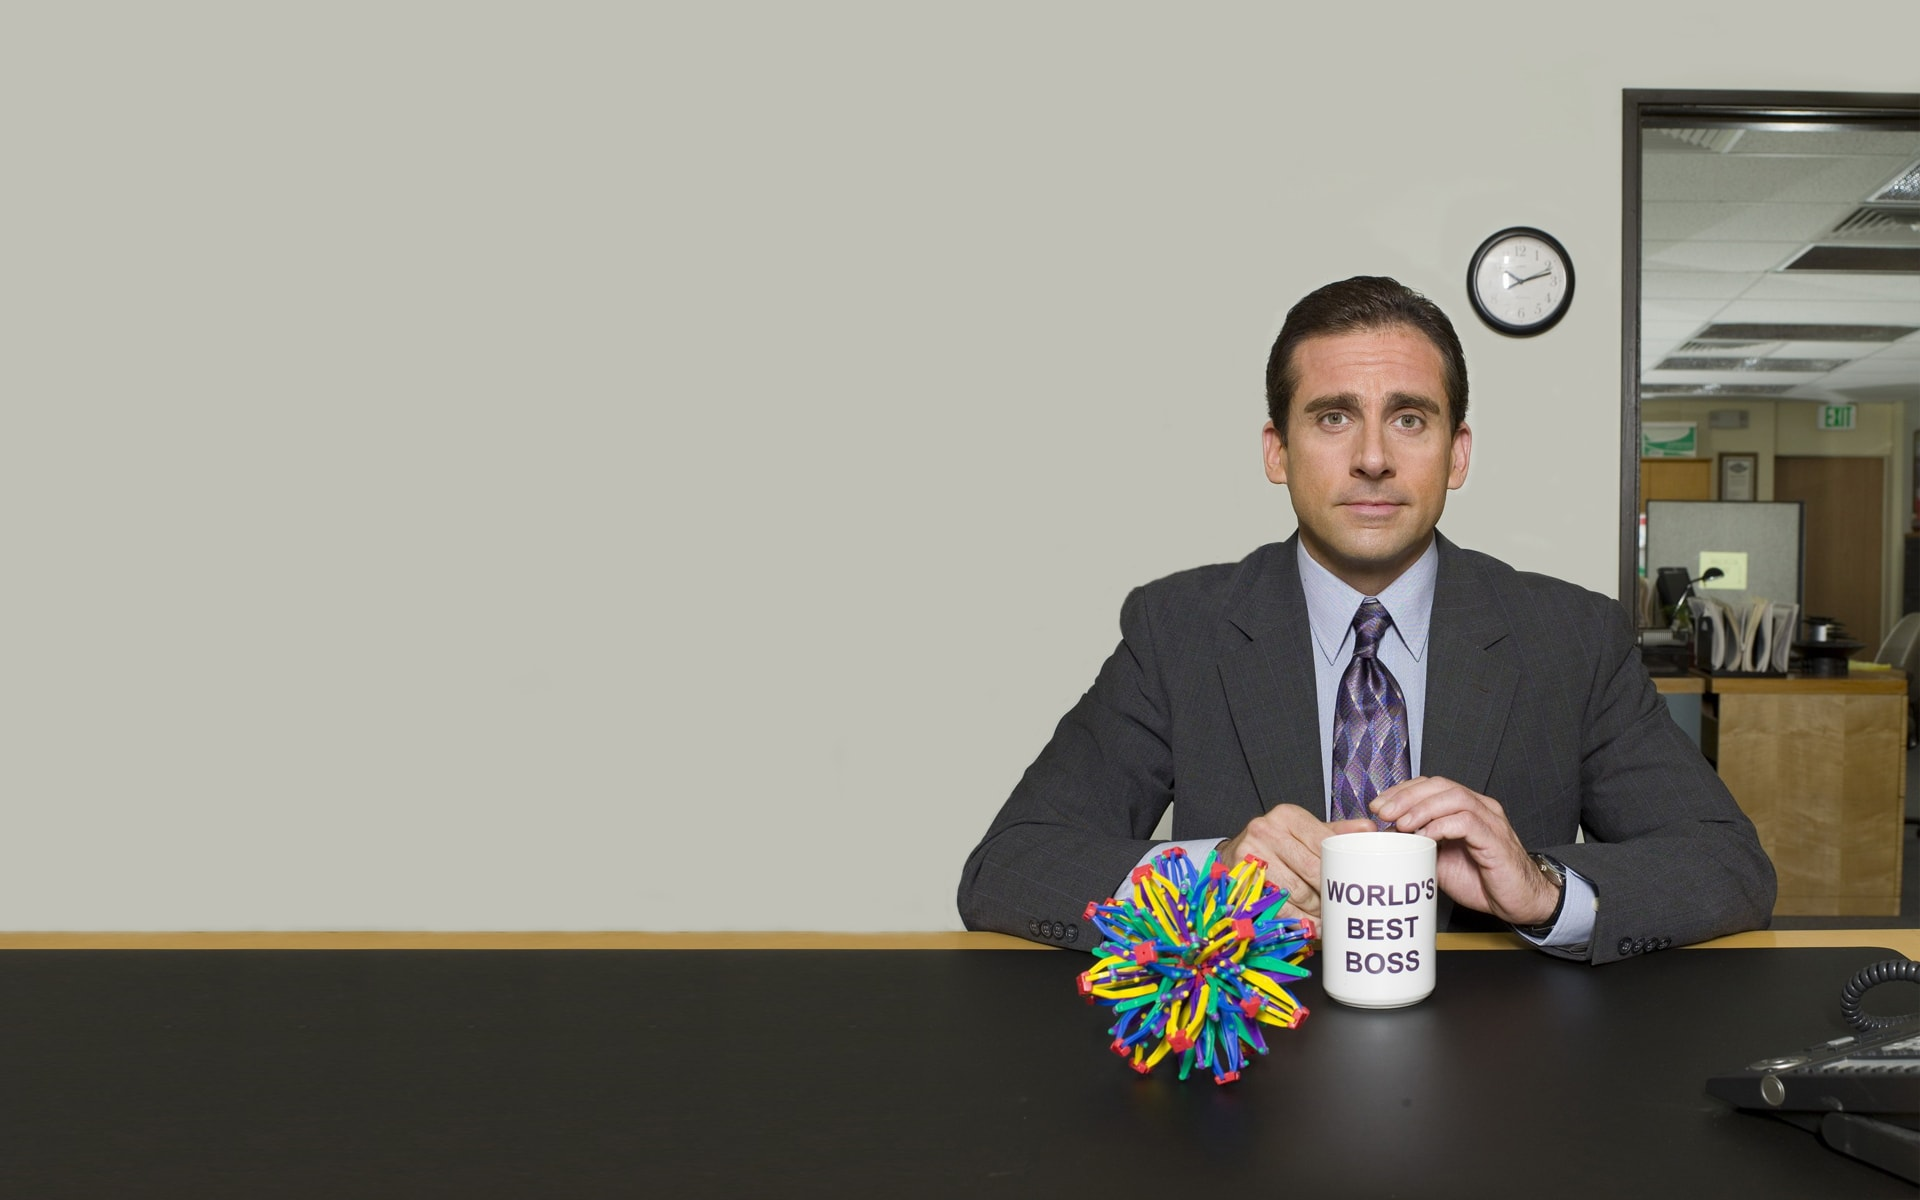 Steve Carell Desktop wallpaper